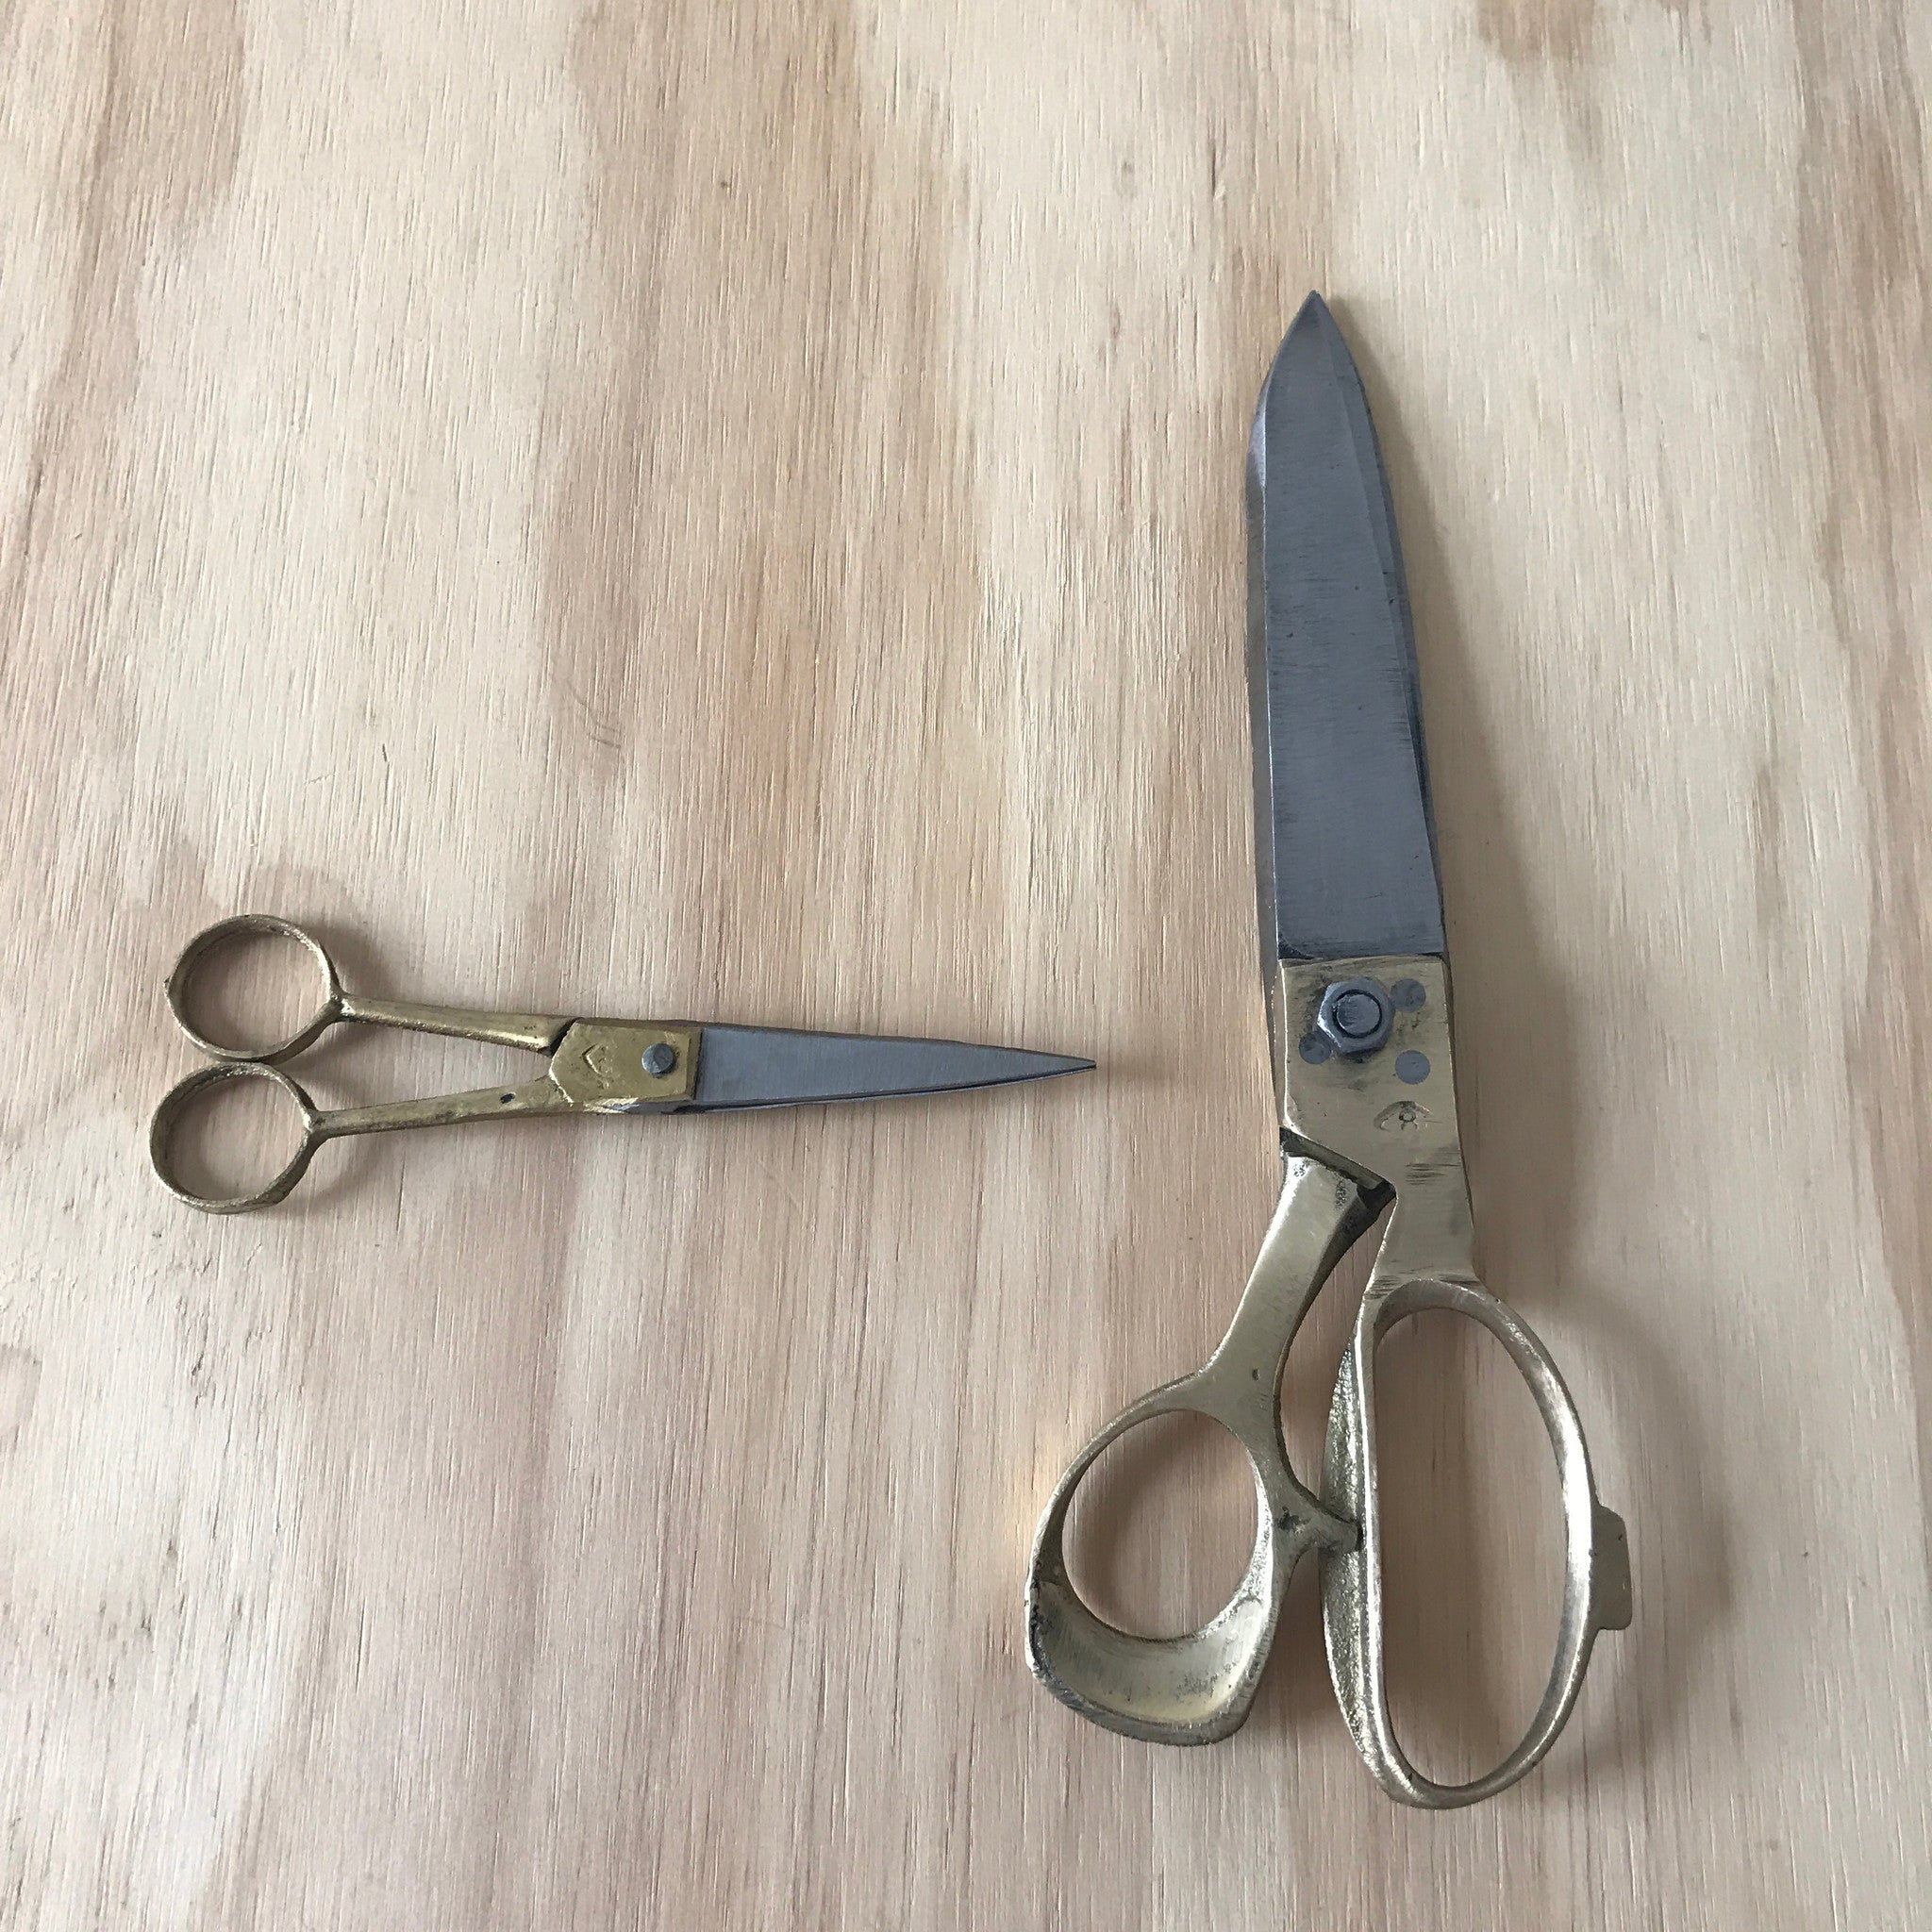 Brass Handled Craft Scissors – Small